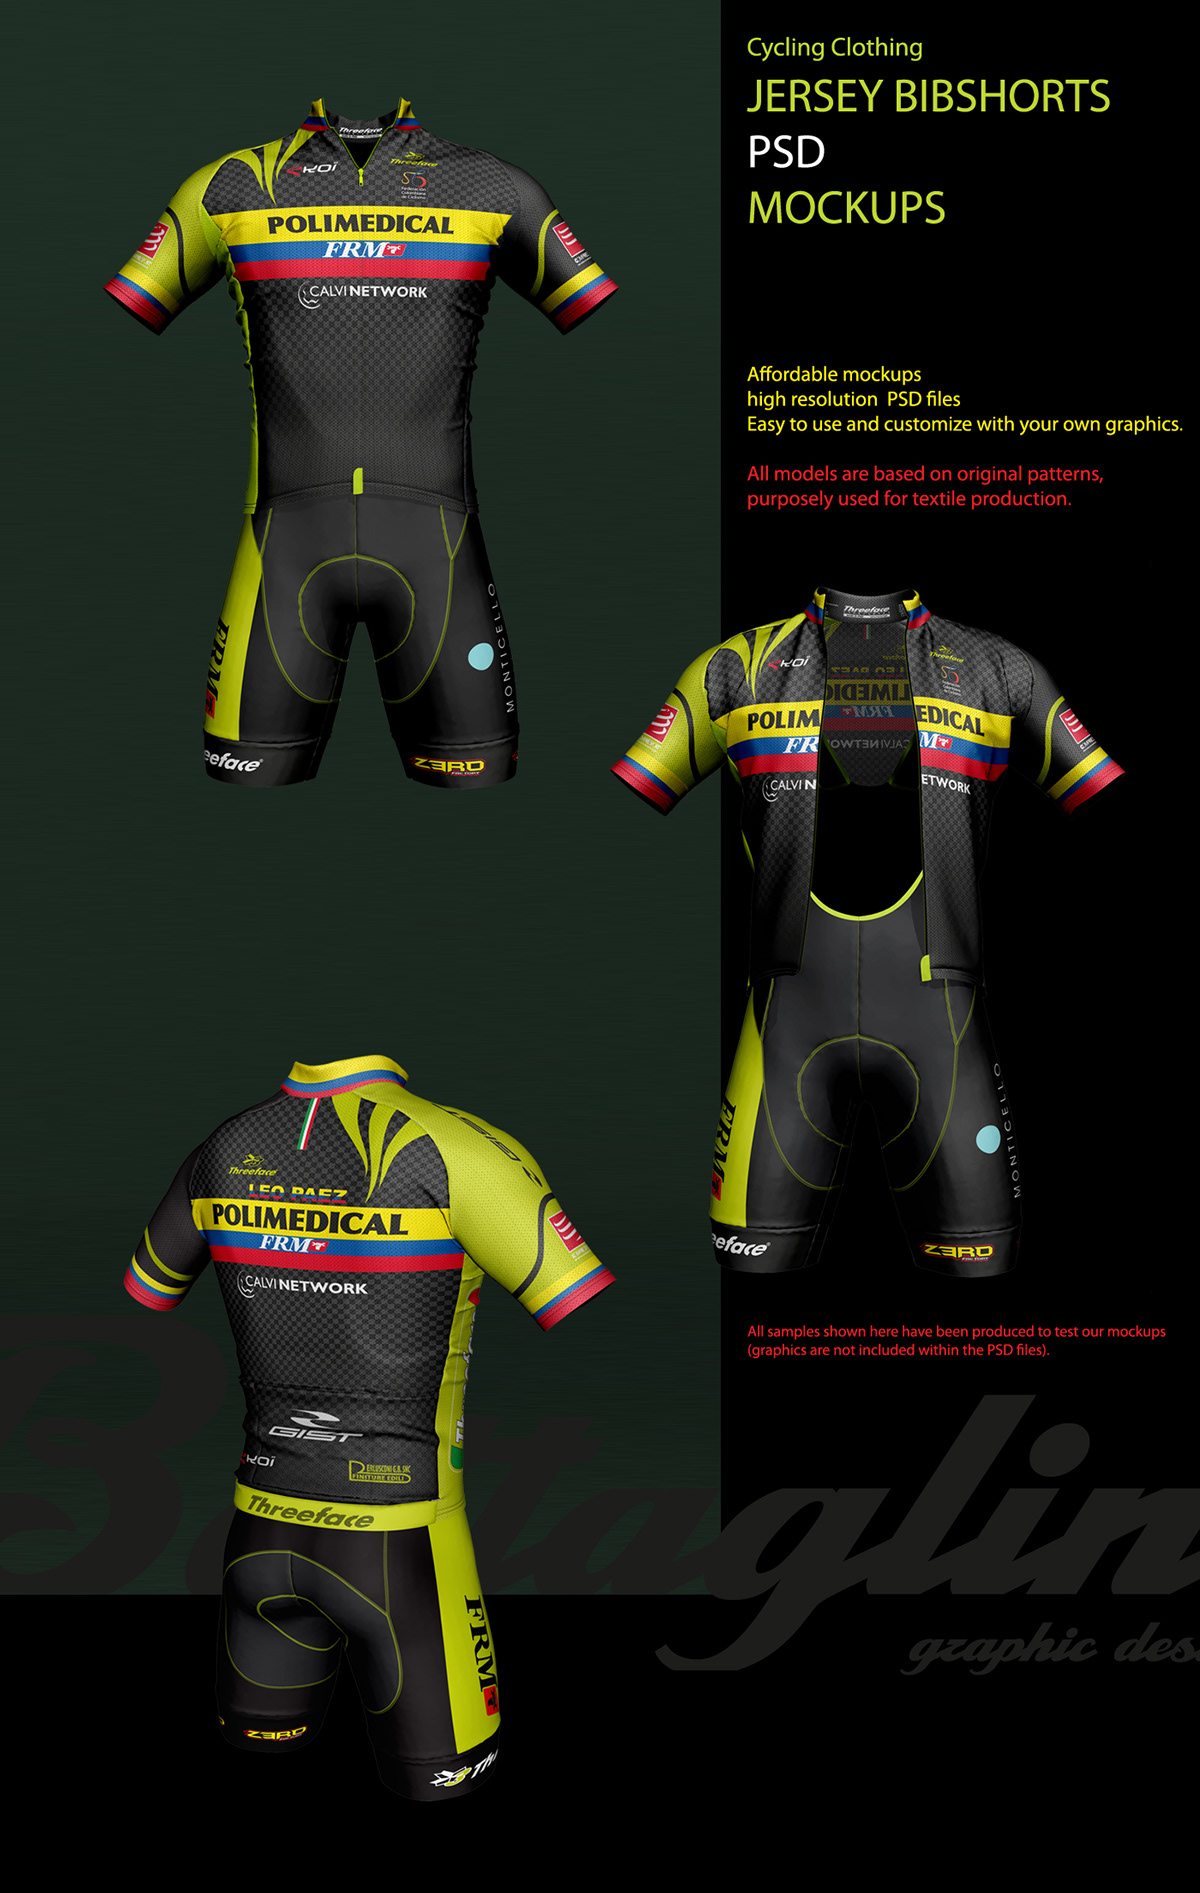 Jersey Bib Shorts Mockups on Behance